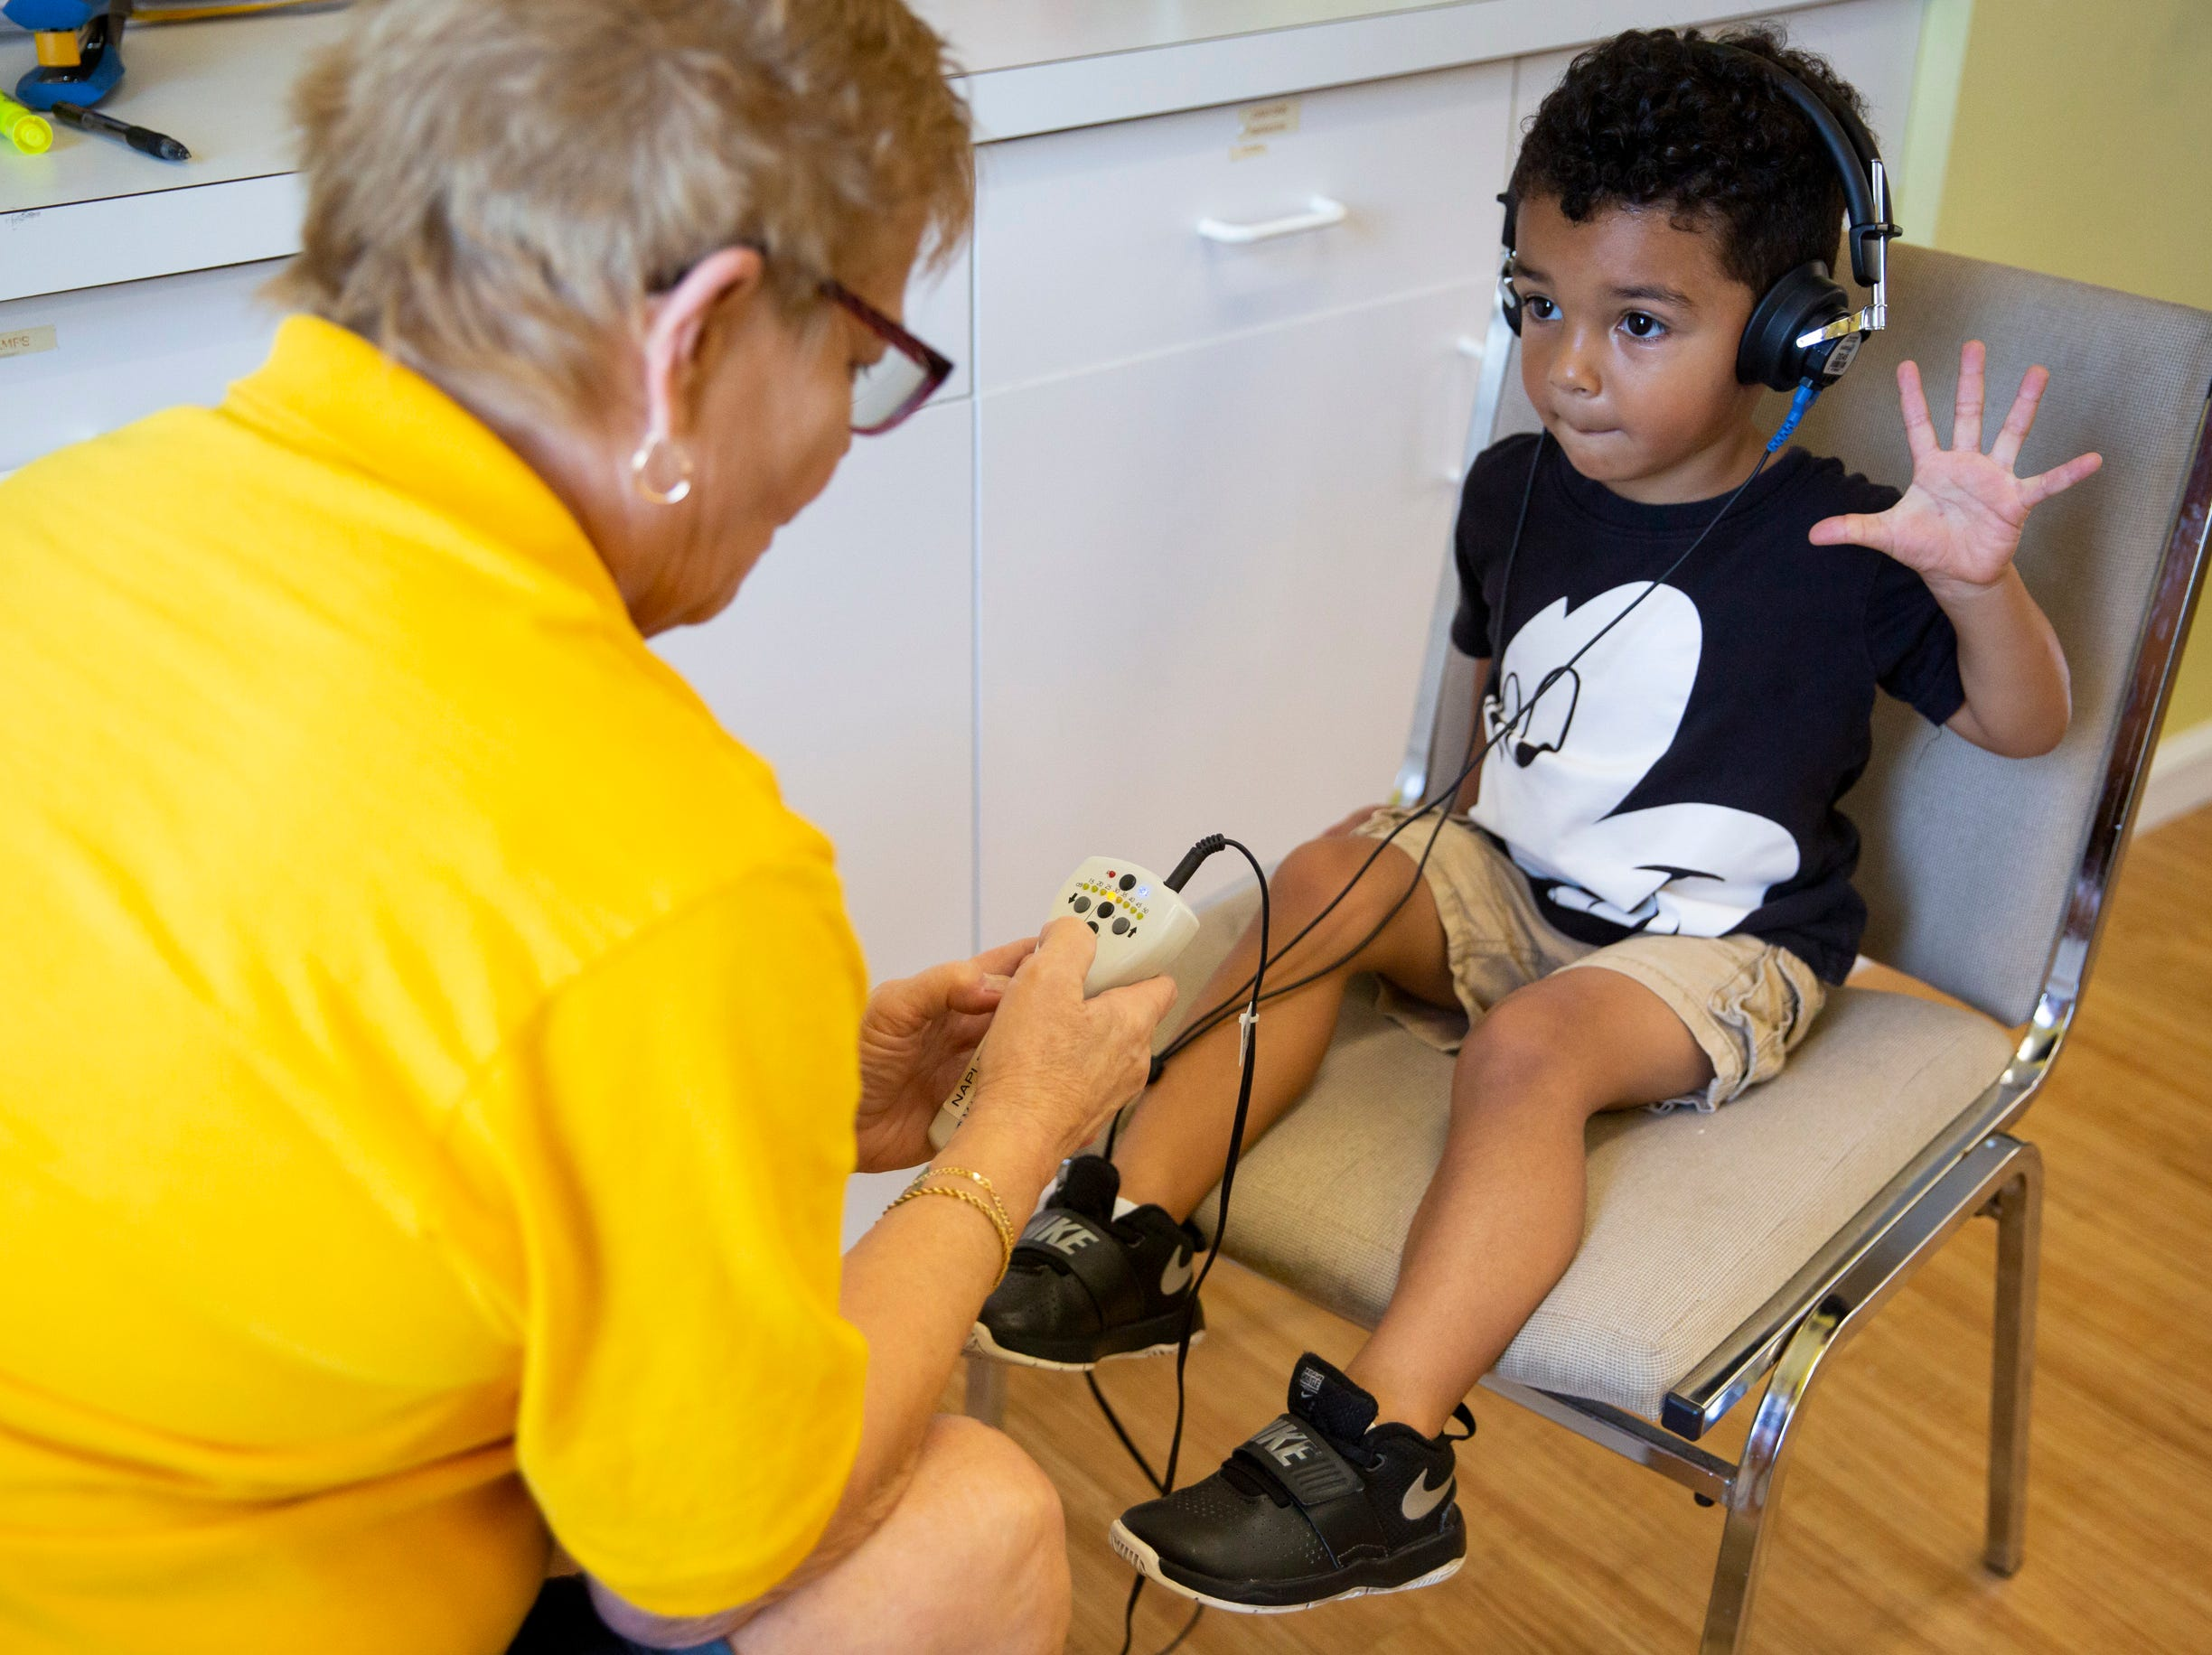 Volunteer Merry Hovey tests Quincy Patton's hearing at Grace Lutheran Preschool in Naples on Friday, April 12, 2019.